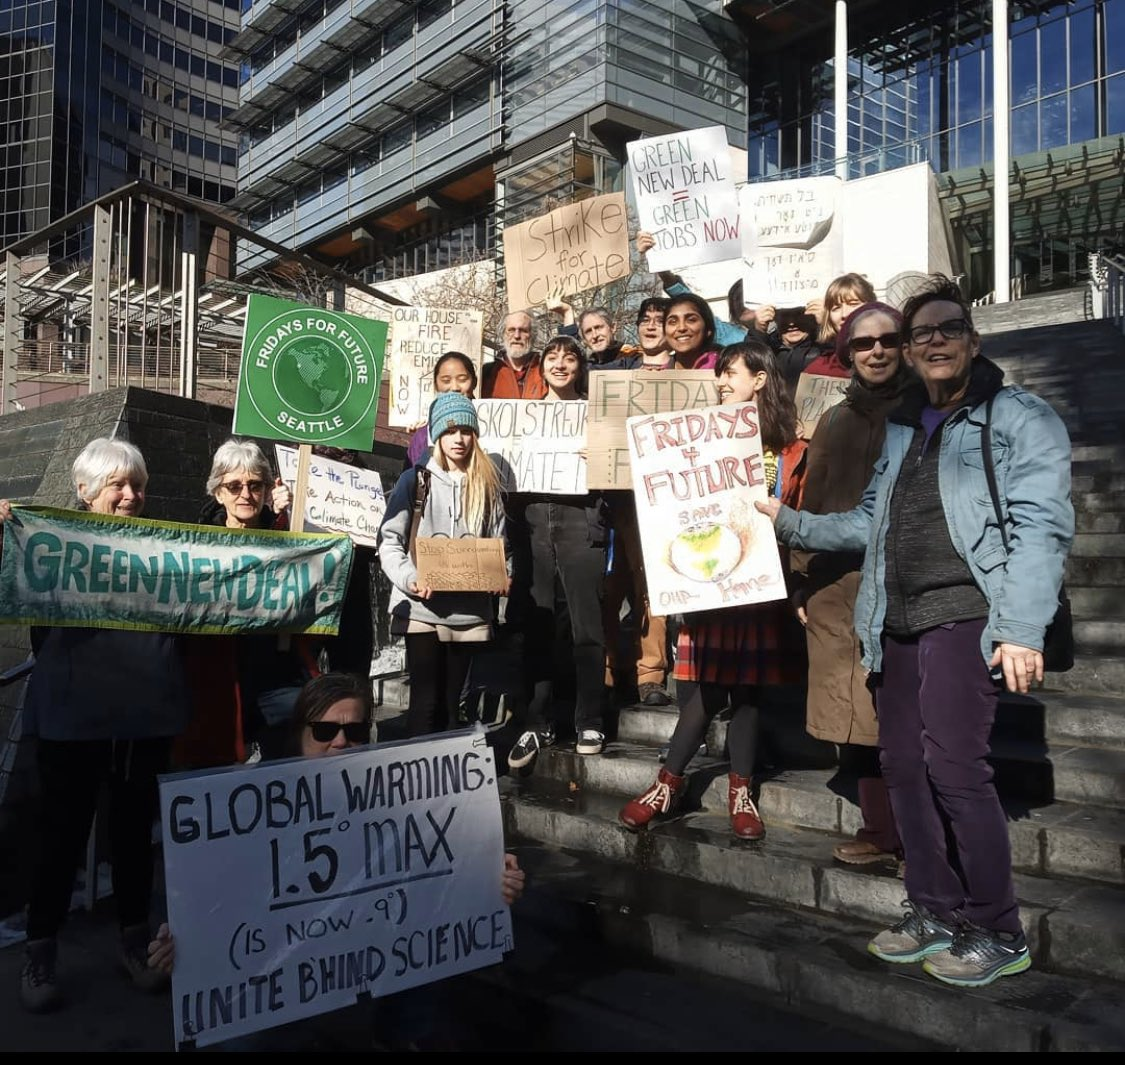 The #ClimateJustice movement is only getting stronger!  It was great to see some new faces at the #FridaysforFuture #ClimateStrike at Seattle City Hall today. Feb 21, 2020 #ClimateActionNow!